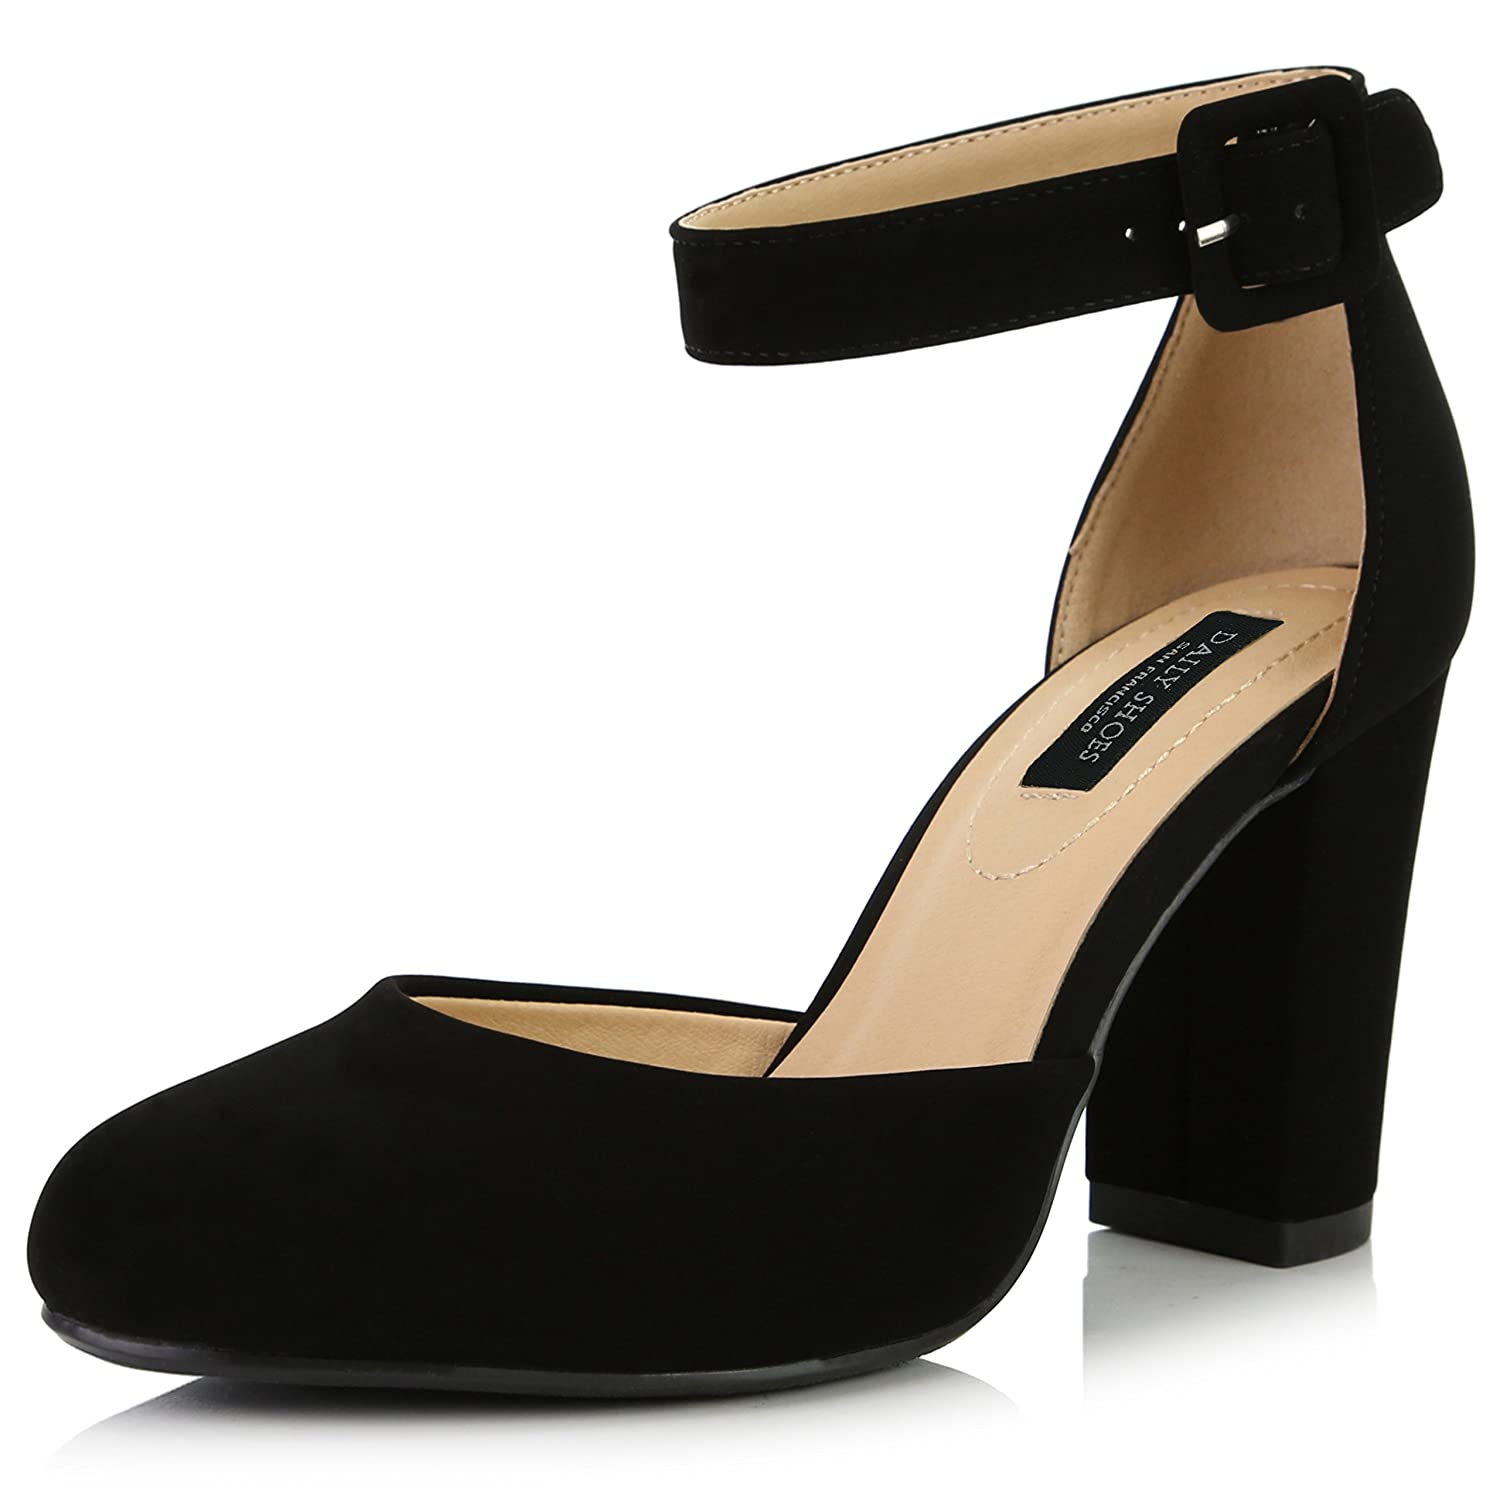 Vintage Style Shoes, Vintage Inspired Shoes DailyShoes Womens Chunky Heel Round Toe Ankle Strap Pumps Shoes $39.99 AT vintagedancer.com